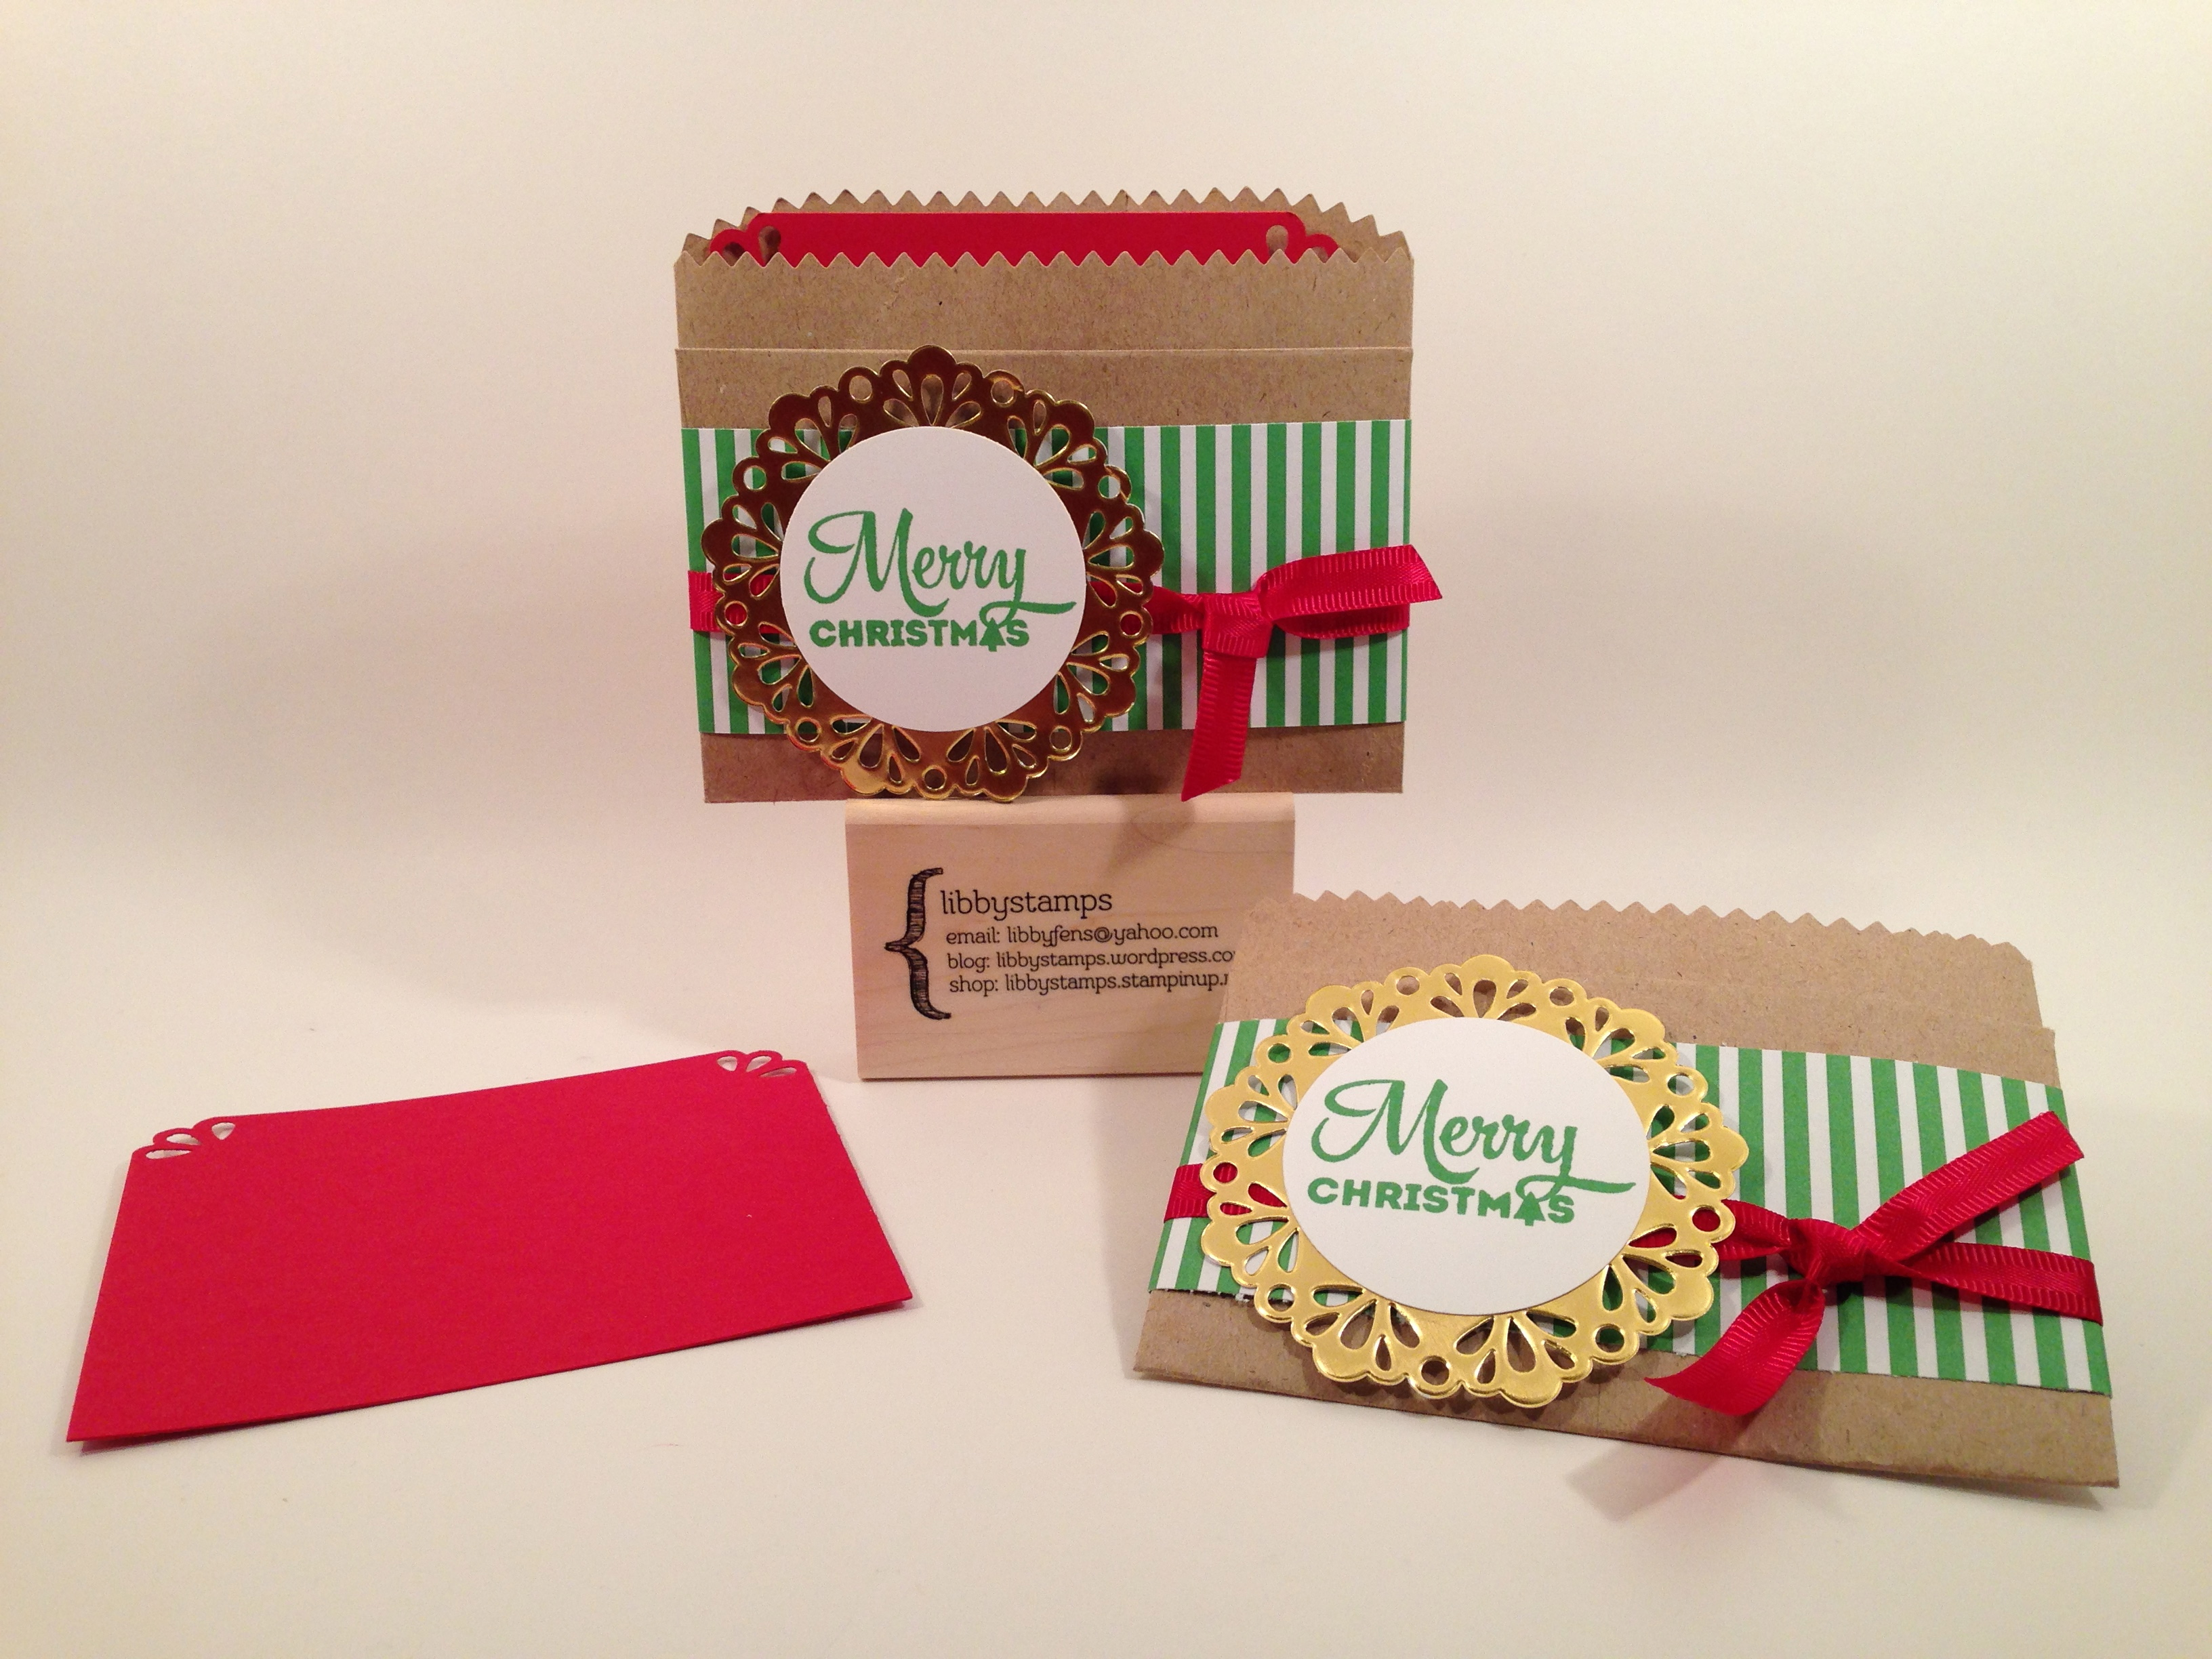 libbystamps, Stampin' Up, Lots of Joy, Kraft Tag a Bag Gift Bag, Metallic Foil Doilies, Curvy Corner Trio Punch, 2015-2017 In Color Envelope Paper, Real Red 3/8 Satin Woven Ribbon, gift card holder